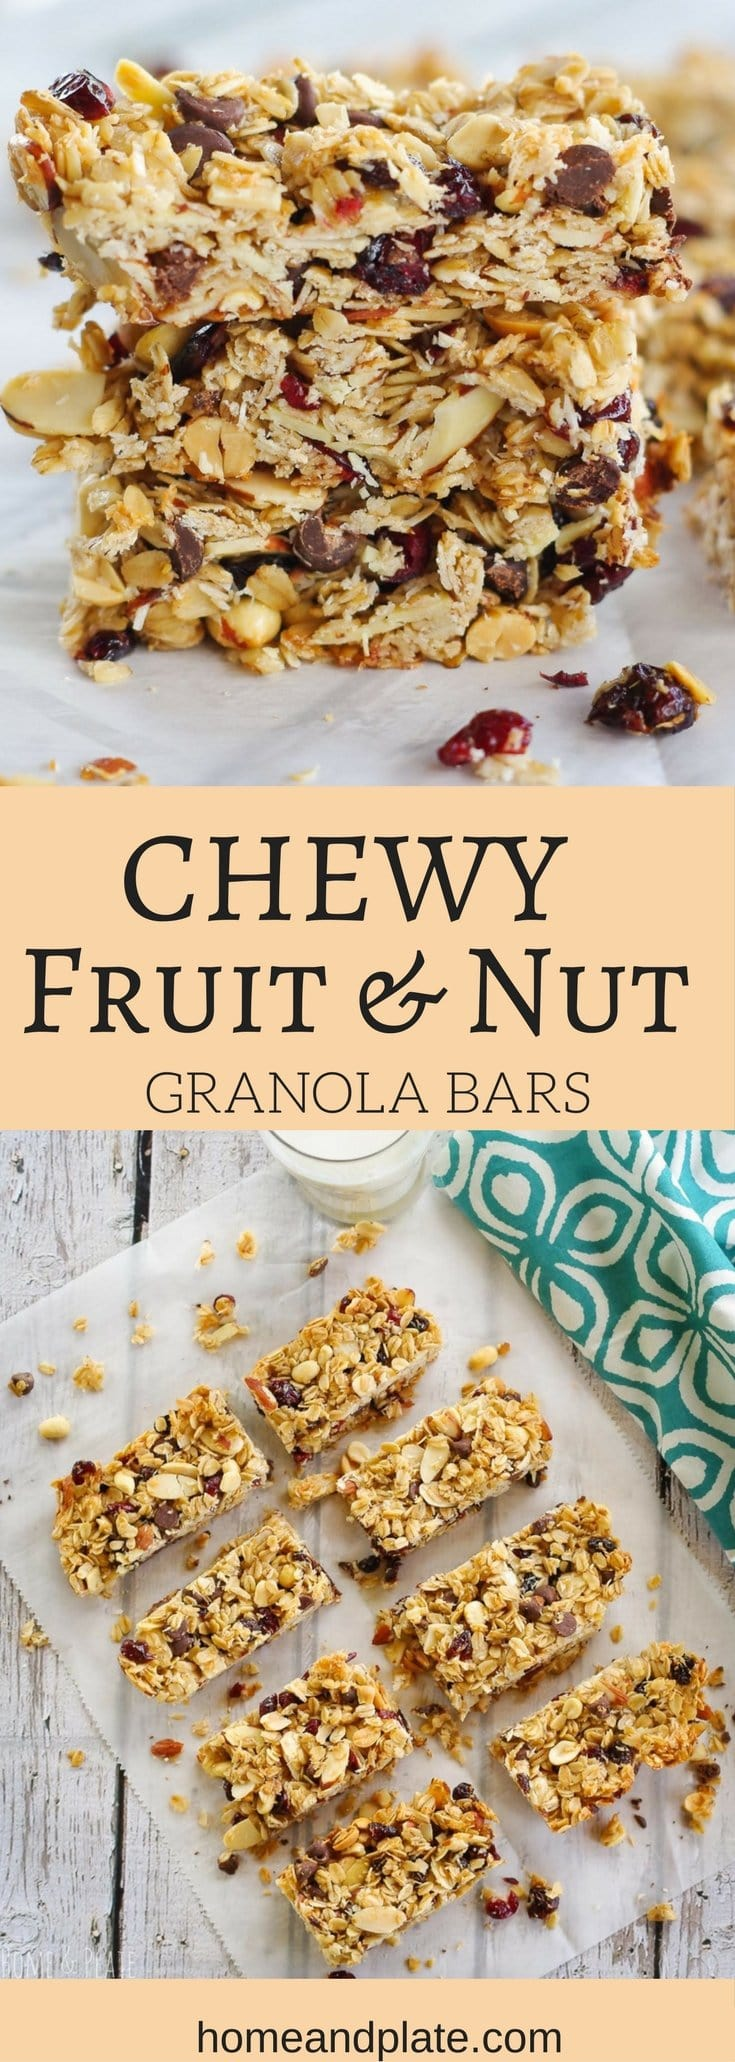 Chewy Fruit & Nut Granola Bars | www.homeandplate.com | Chewy and delicious fruit & nut granola bars are made from scratch and taste better and are healthier than anything store bought.